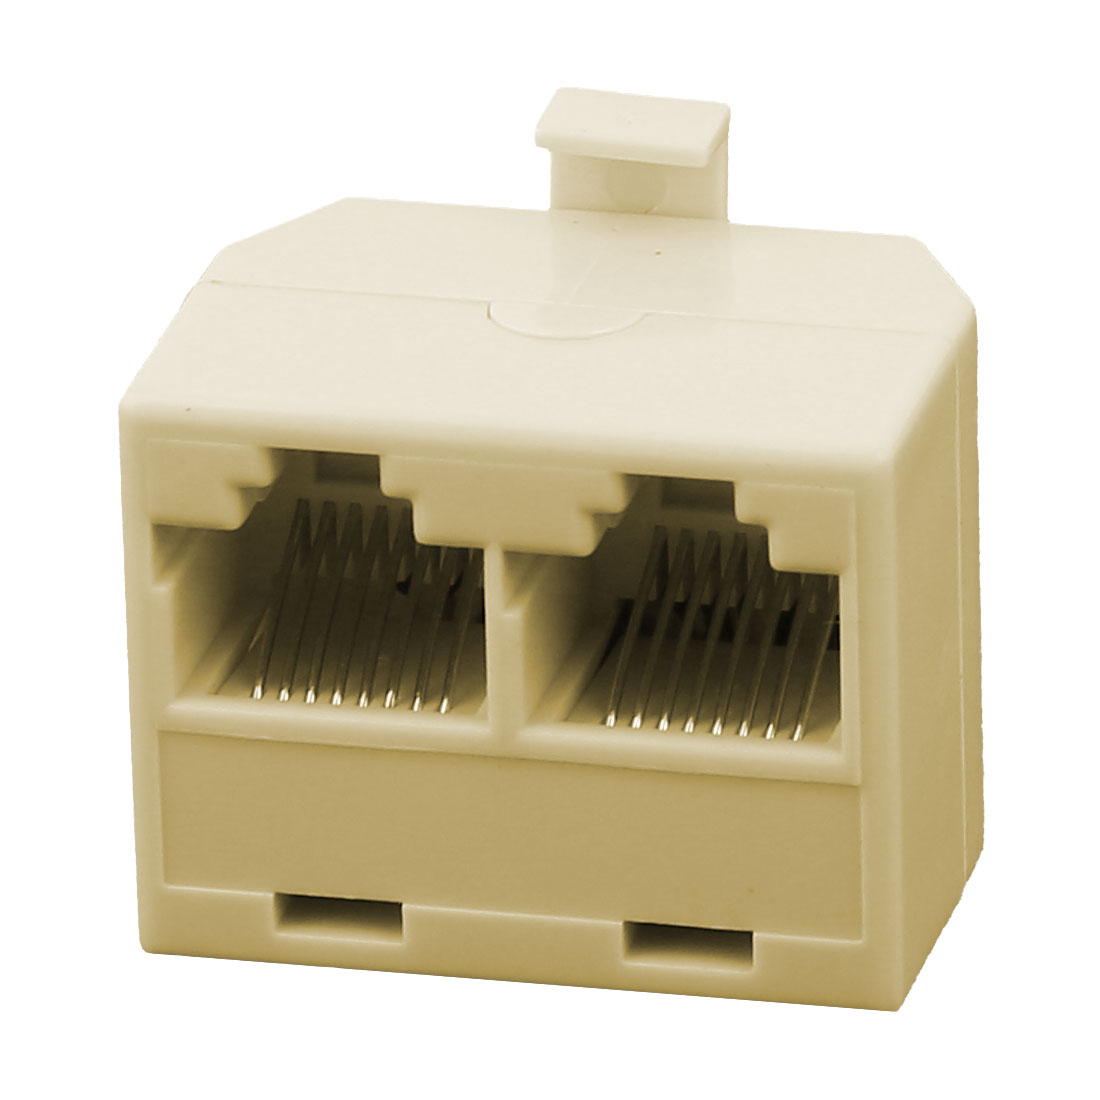 RJ45 2 Female to Male Plug Network Cable Adapter